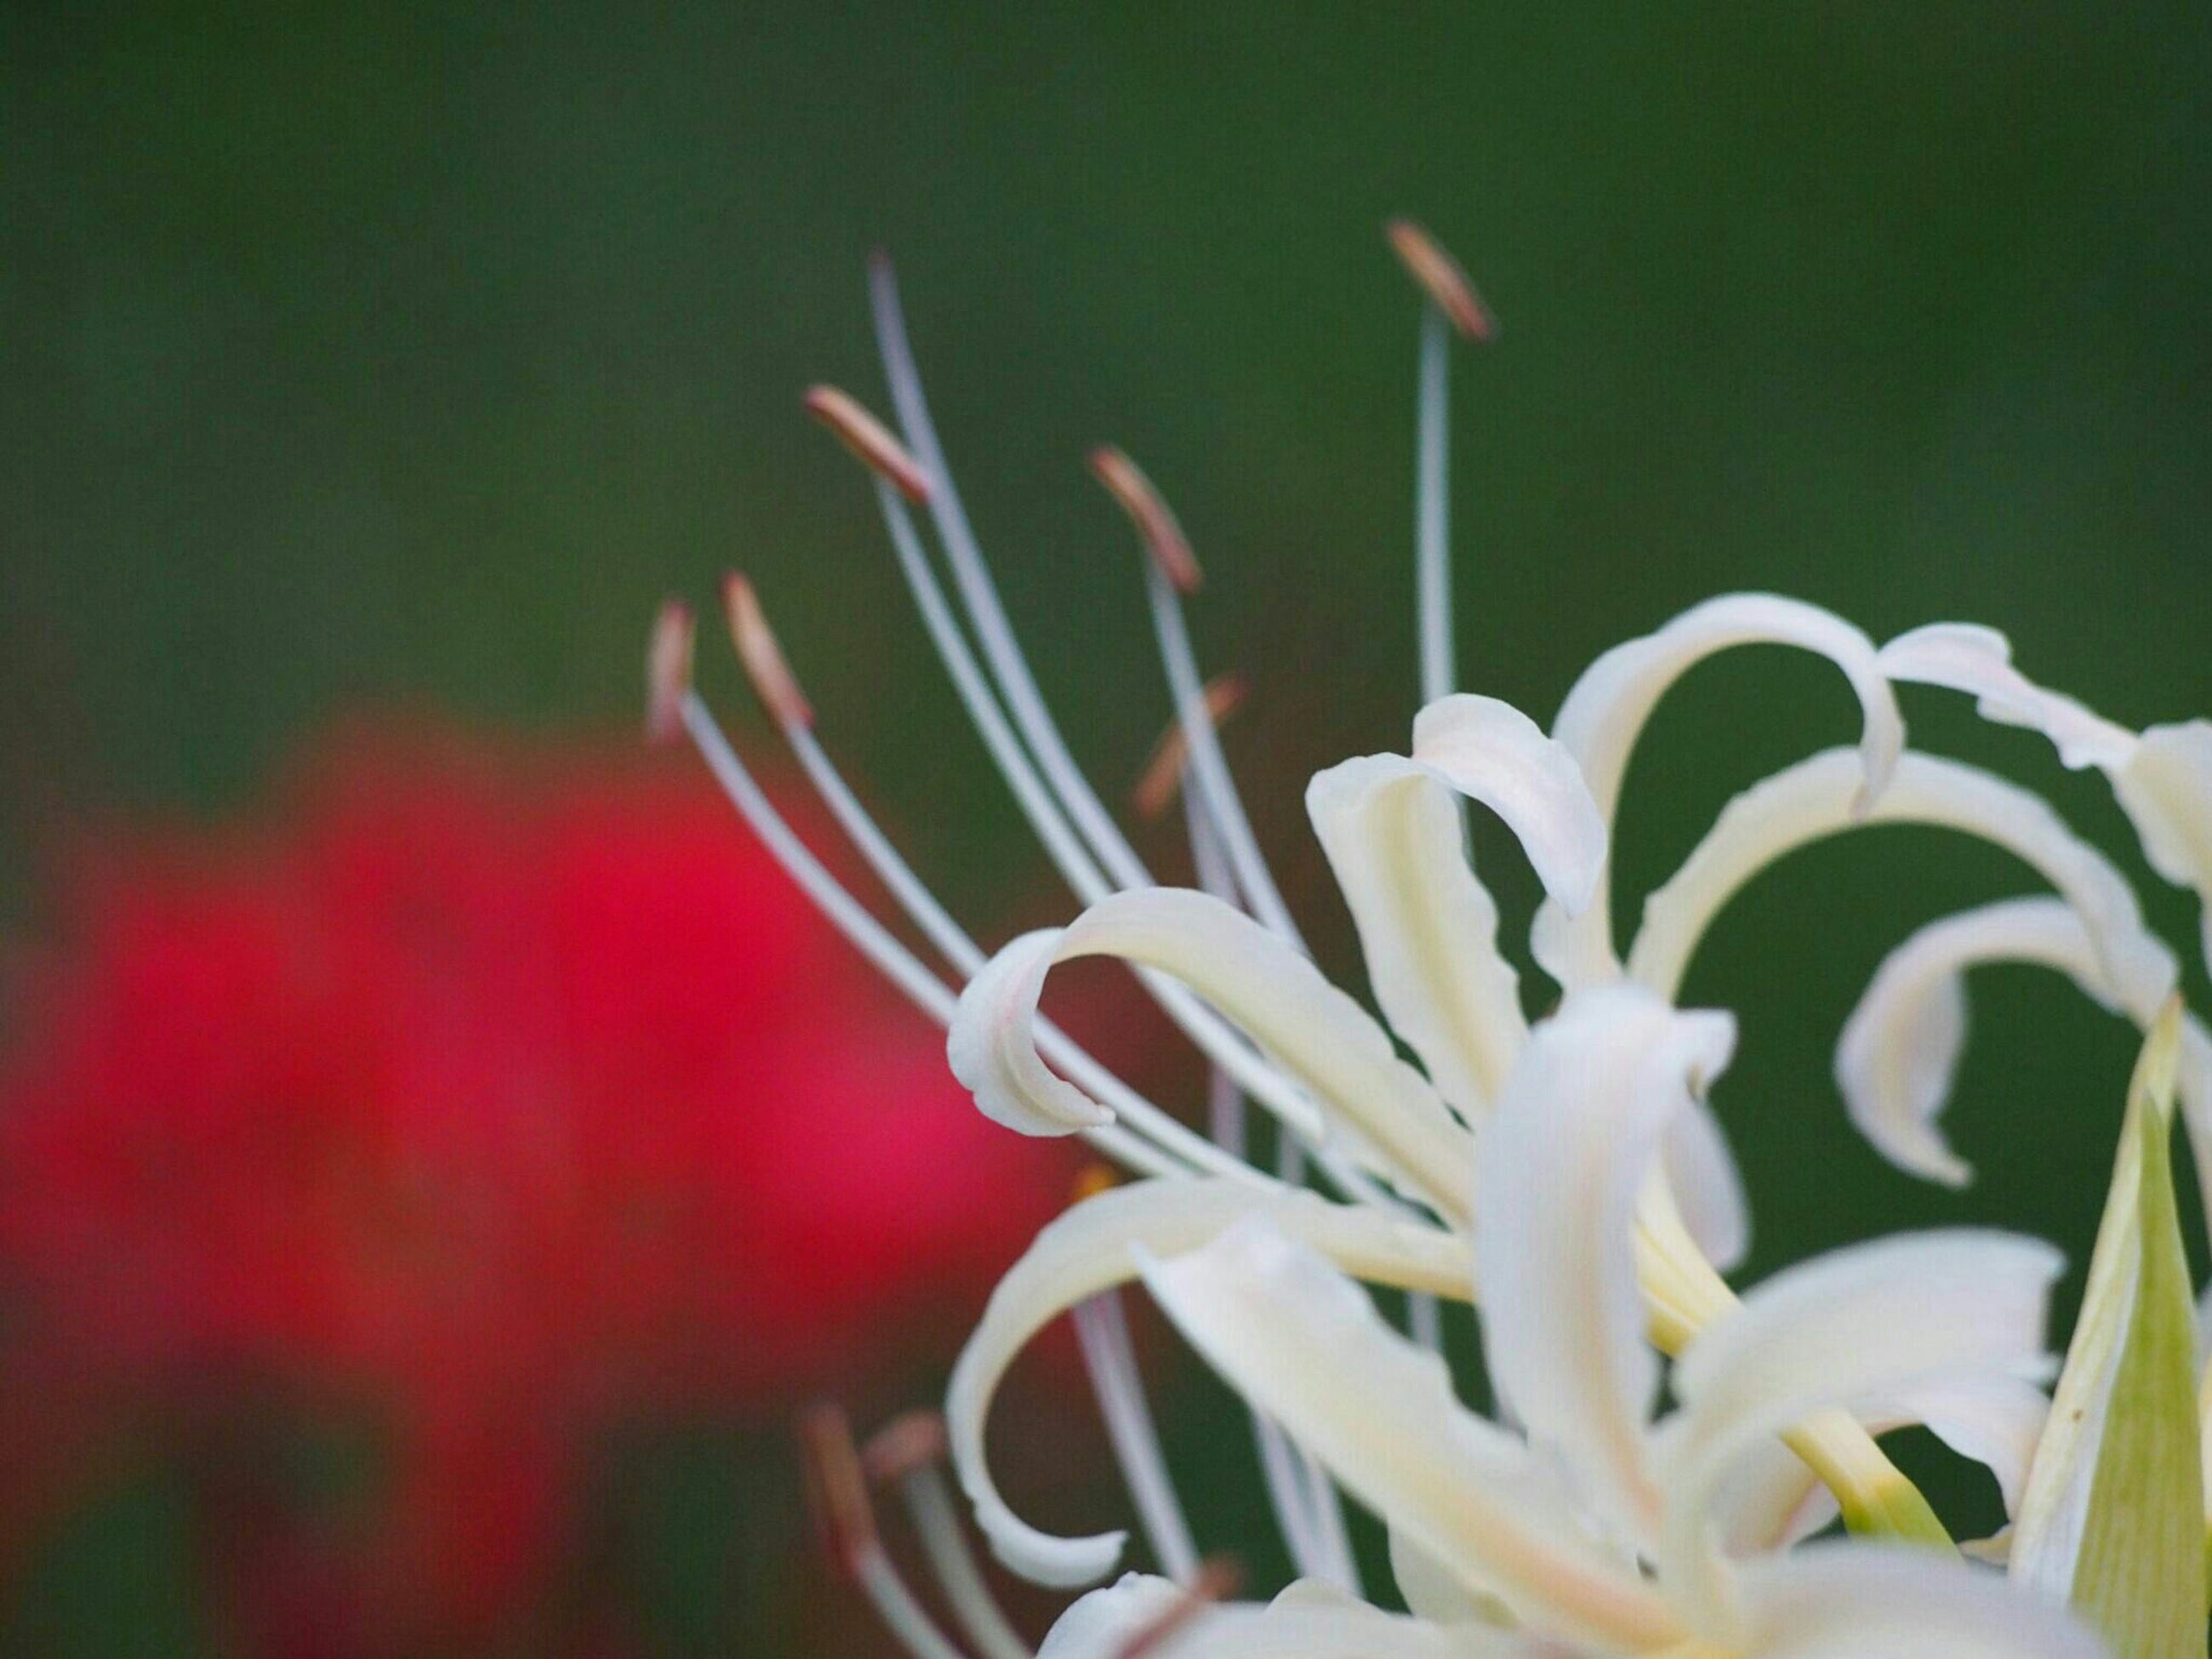 flower, growth, fragility, petal, freshness, close-up, plant, flower head, focus on foreground, beauty in nature, nature, stem, selective focus, bud, blooming, in bloom, botany, new life, no people, leaf